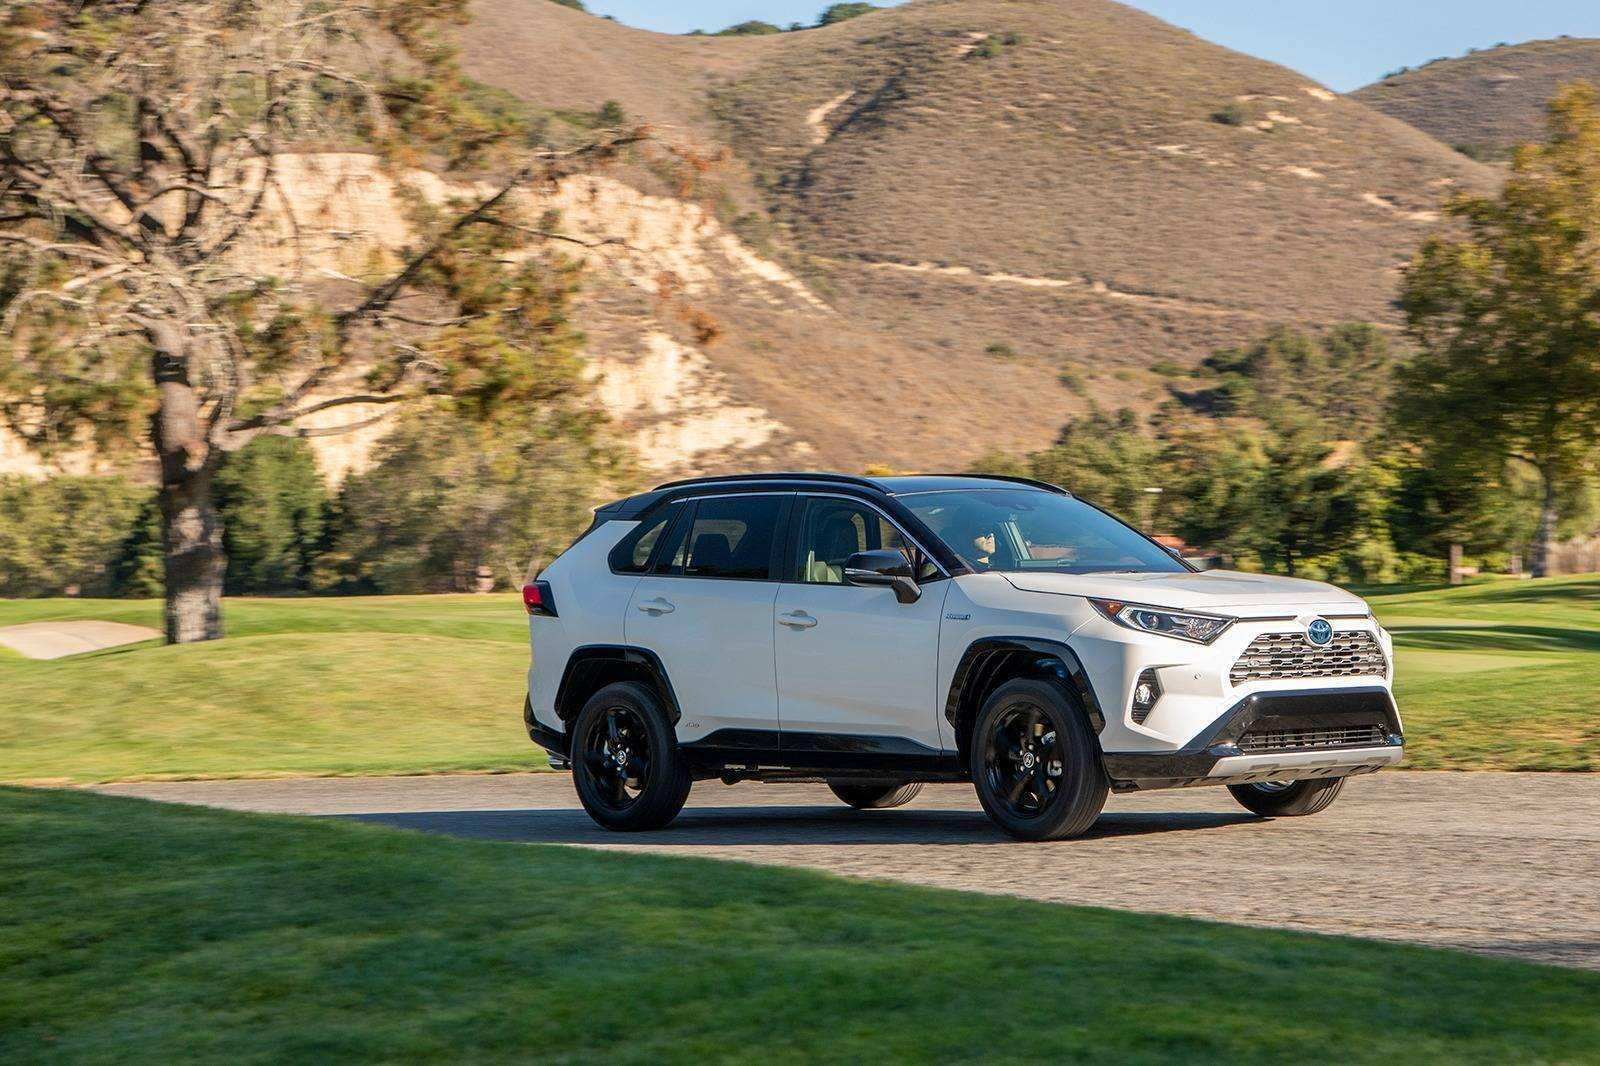 21 Great 2019 Toyota Rav4 Specs Picture Release Date And Review New Review with 2019 Toyota Rav4 Specs Picture Release Date And Review